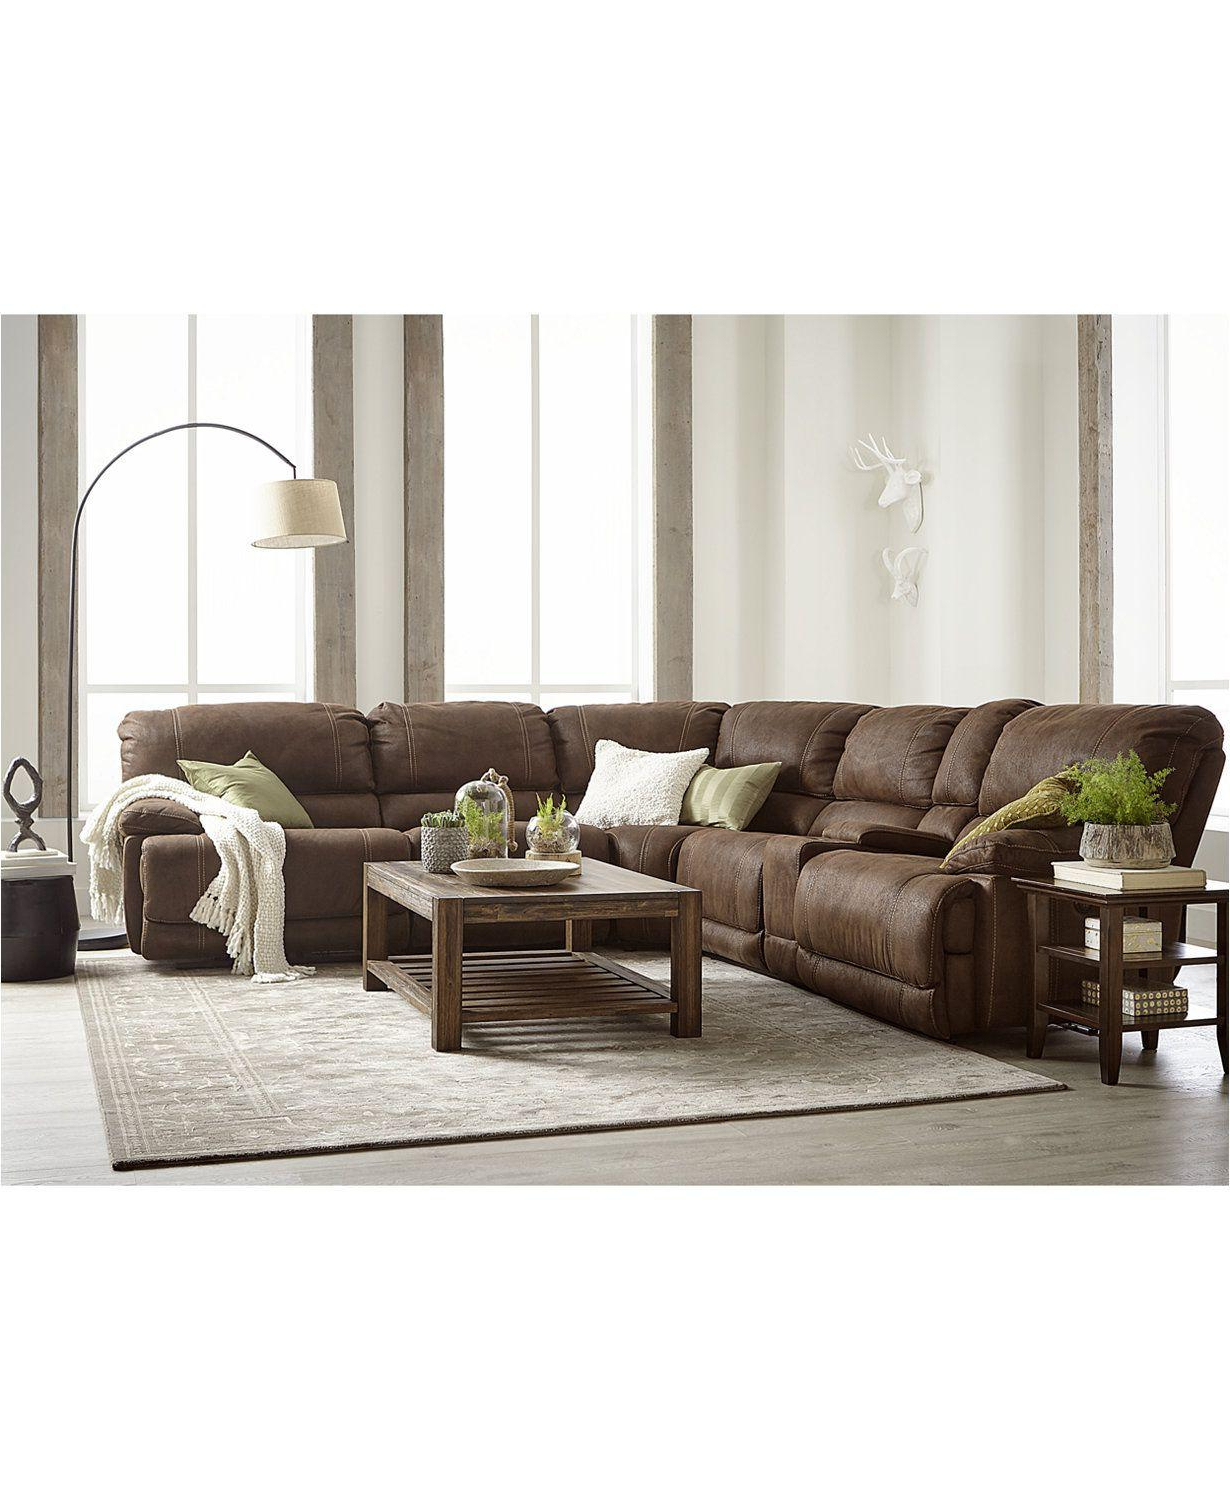 Most Popular Fabric Sectional Sofa With Power Recliner (View 5 of 20)